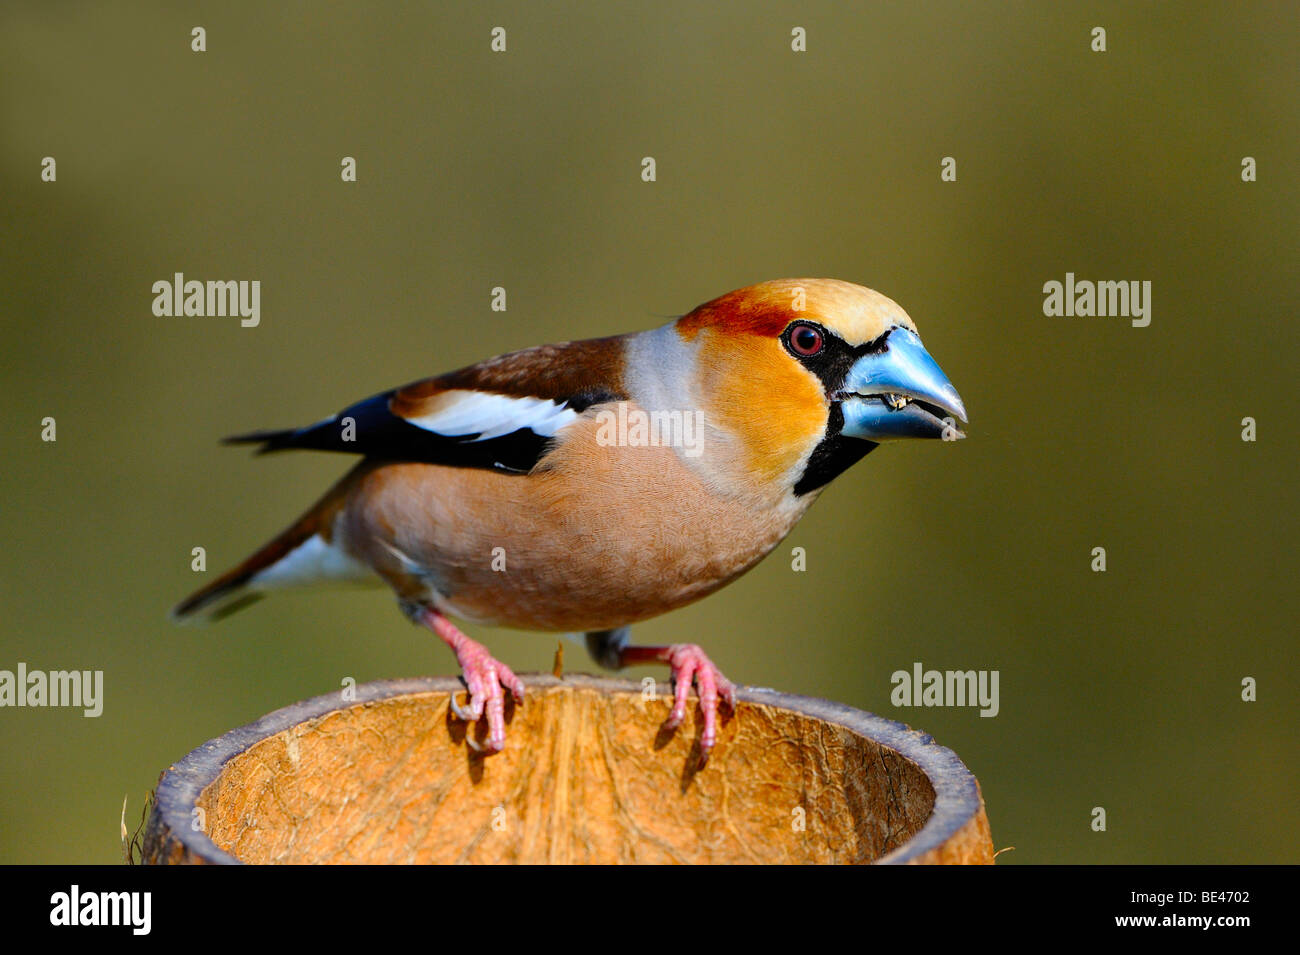 Hawfinch (Coccothraustes coccothraustes) at a feeding site Stock Photo